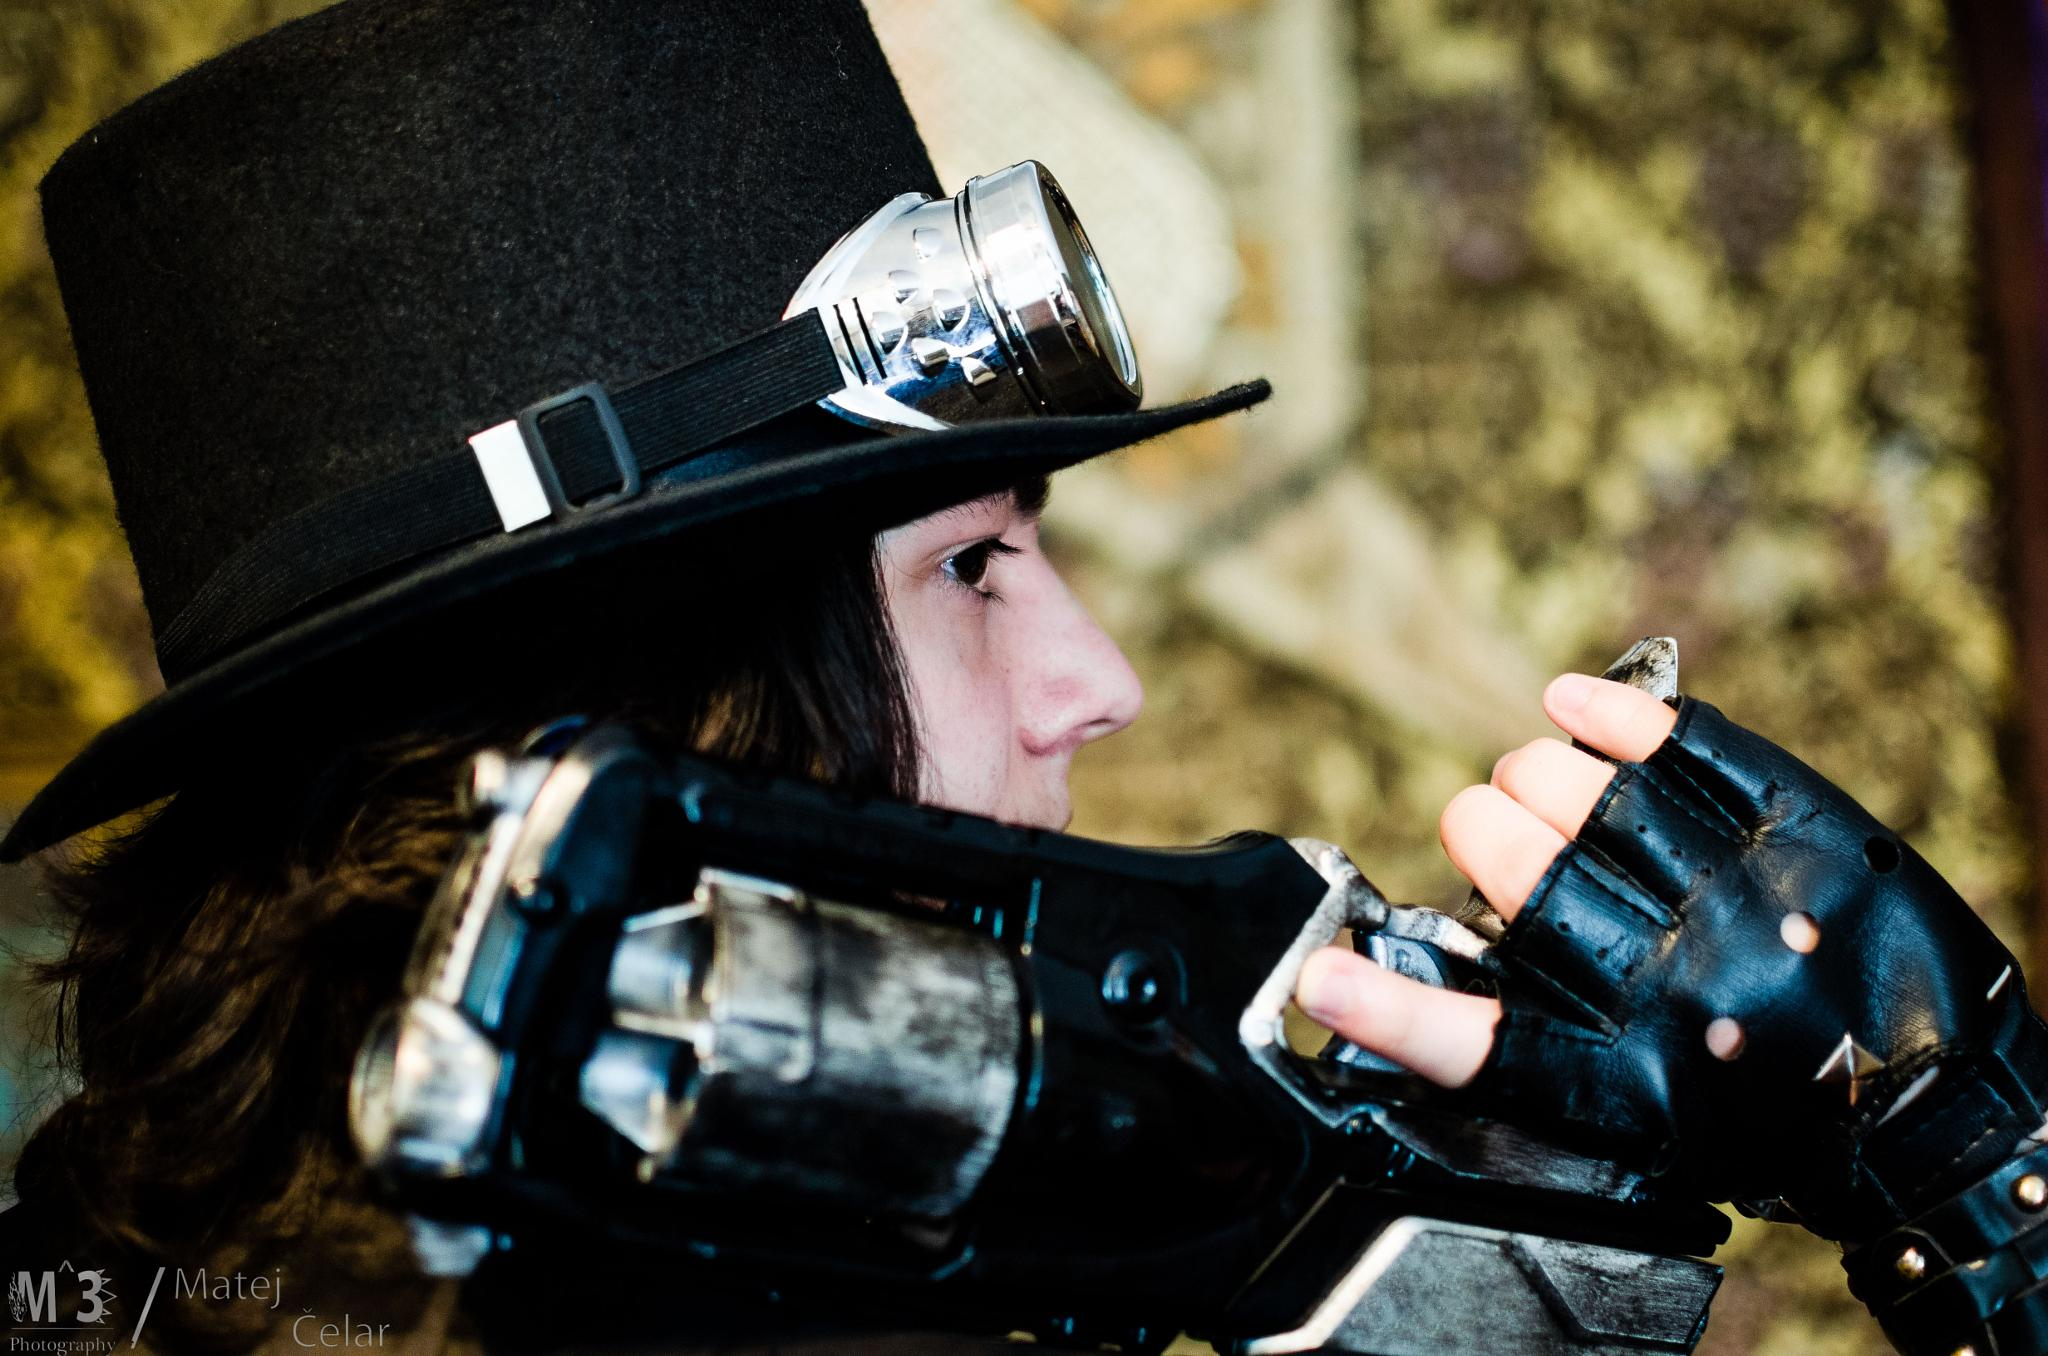 Steampunk Vampire Hunter - Cosplay Shoot by M^3 Photography